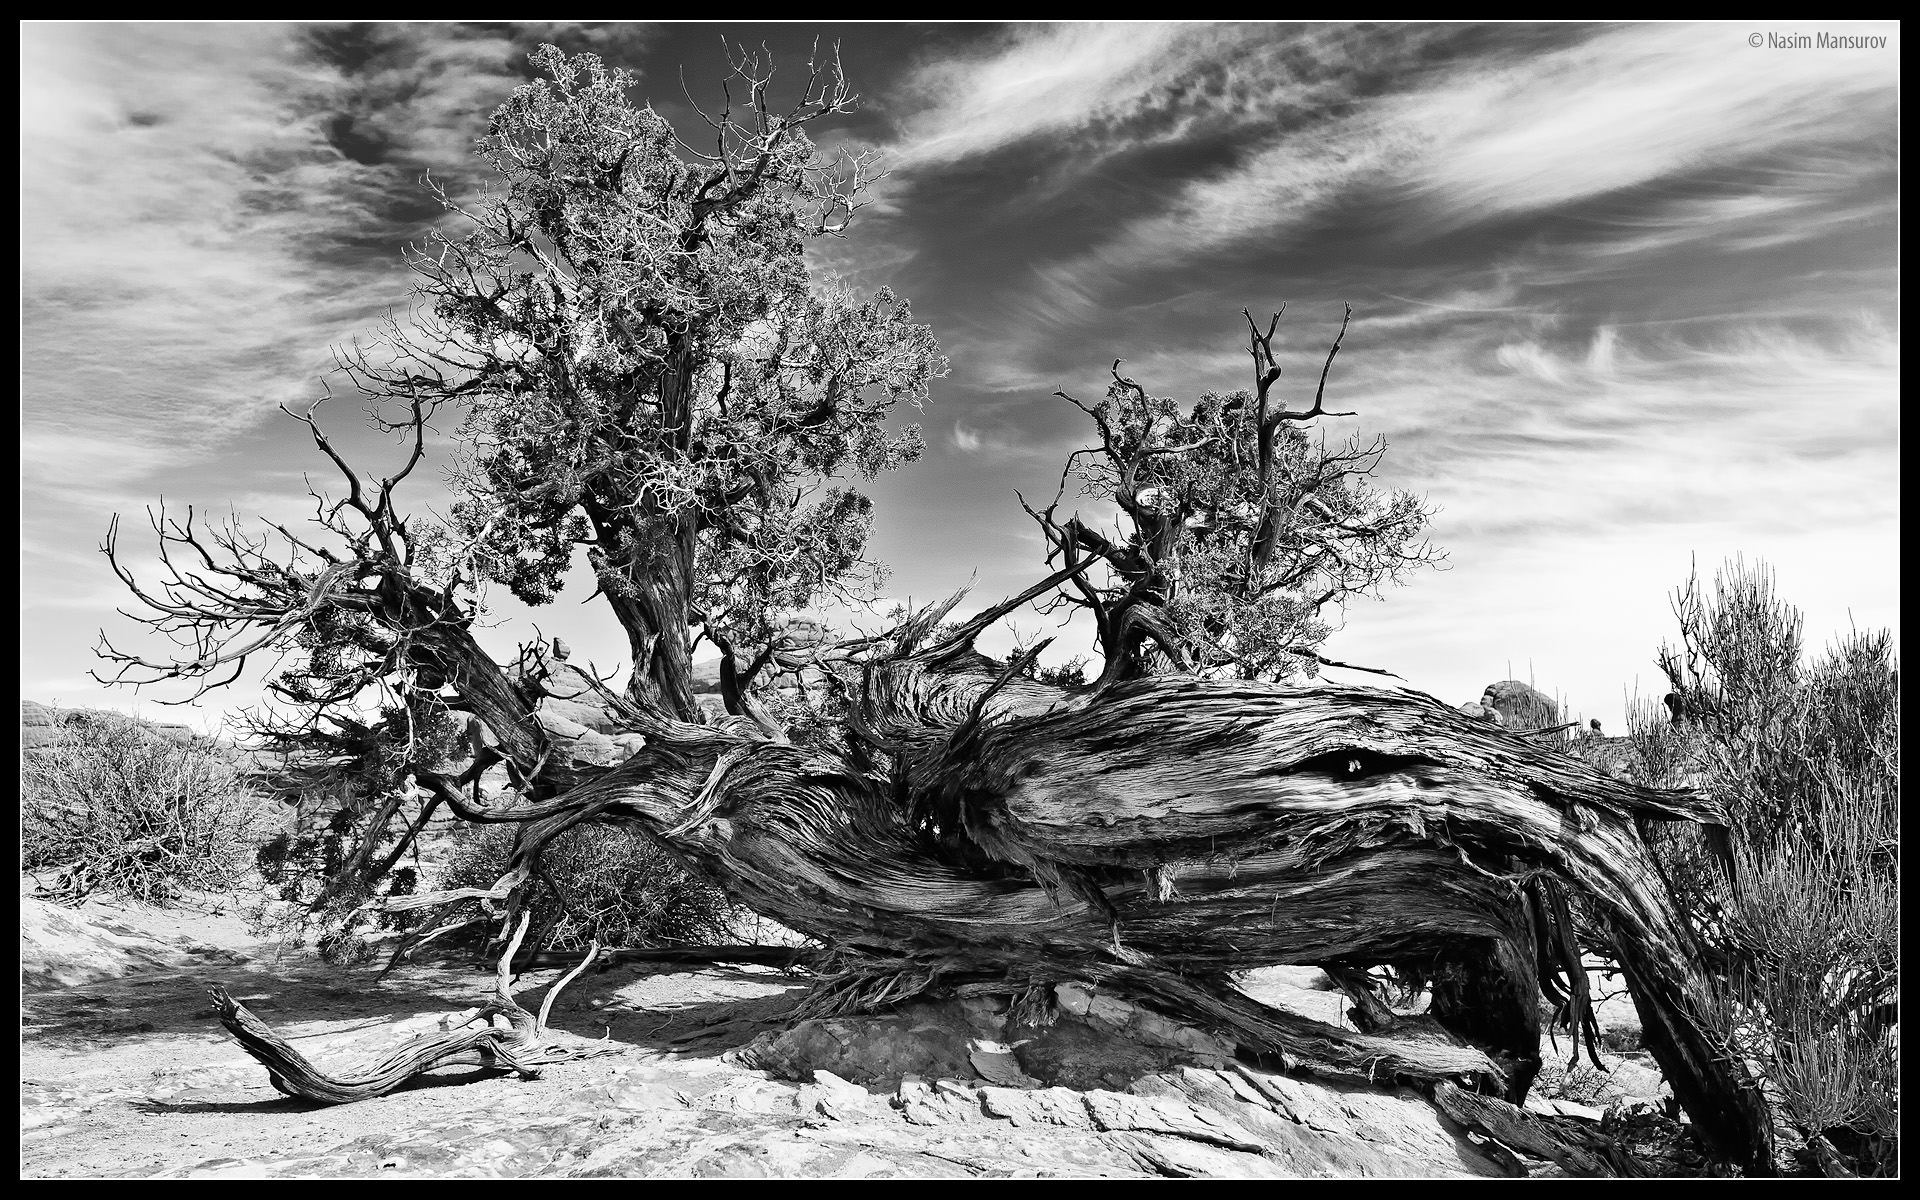 Tree bw nikon d700 16 35mm f 4 32mm iso 200 1 250 f 11 0